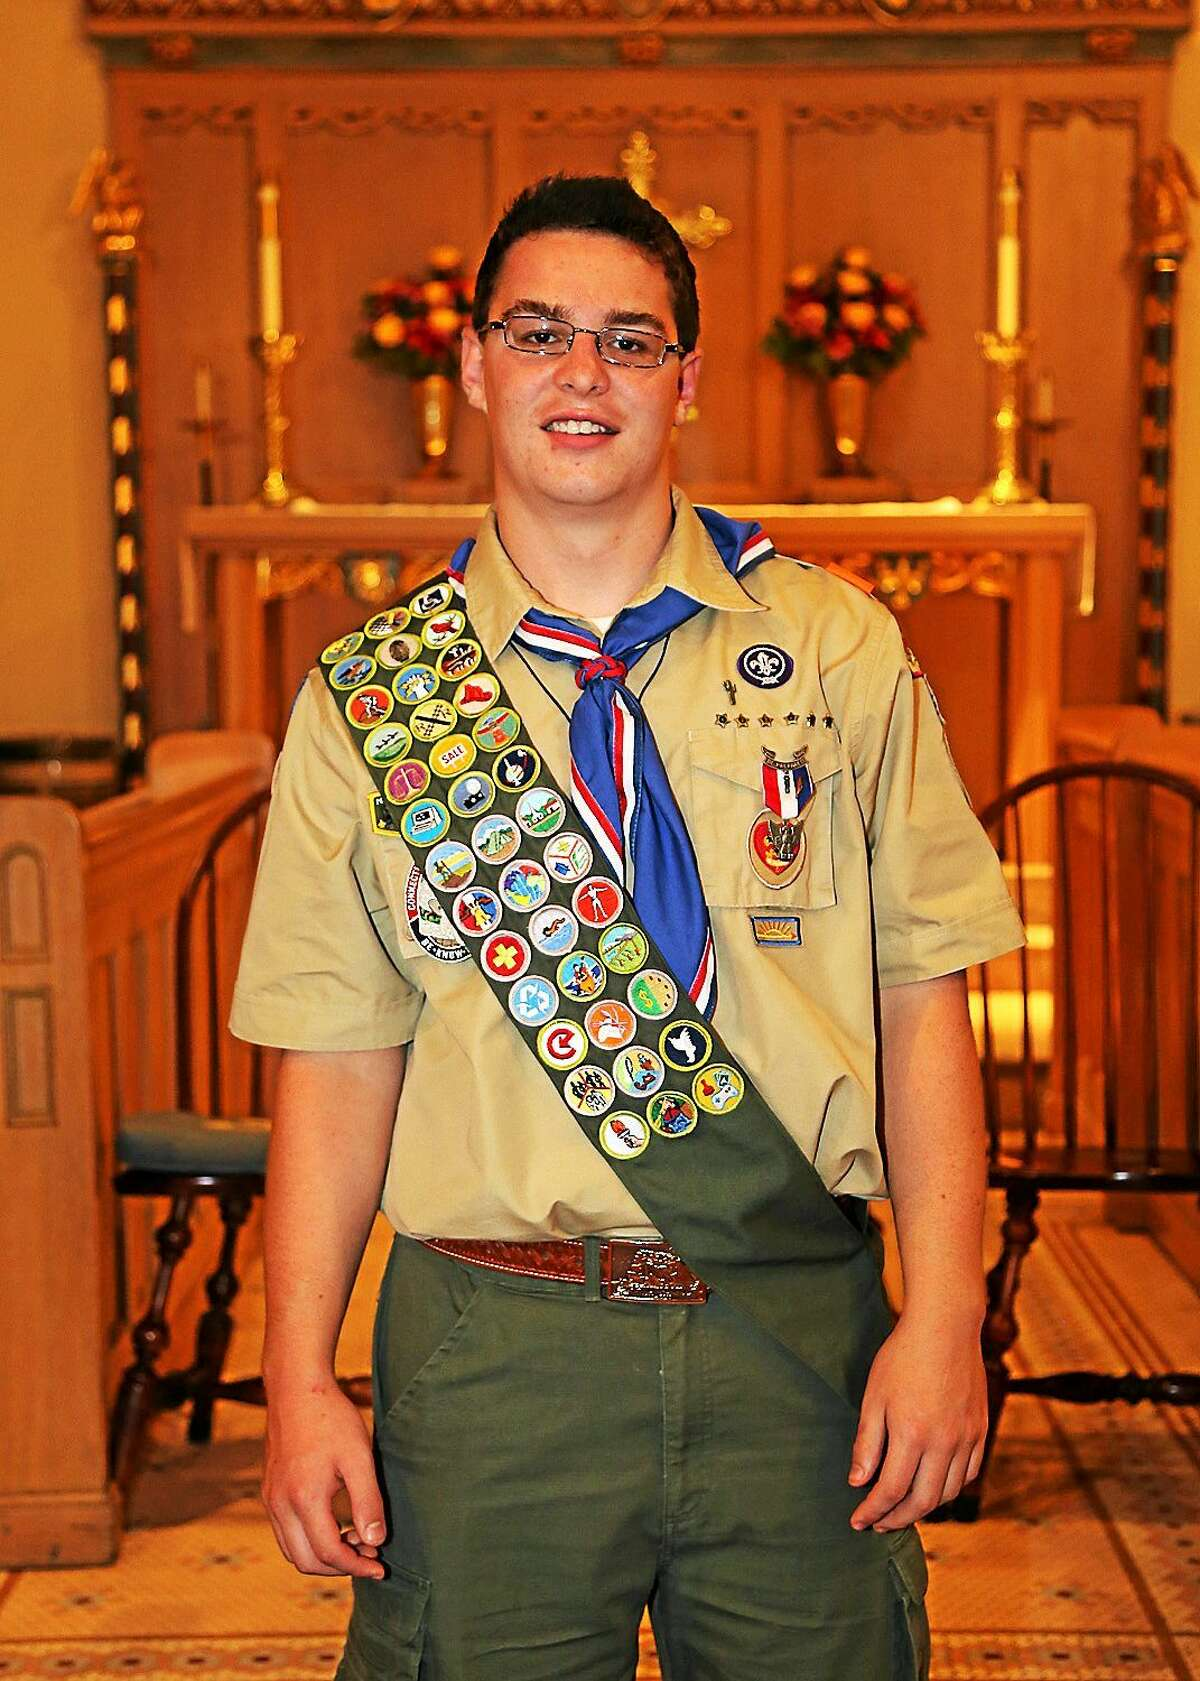 Chester/Deep River Boy Scout Troop 13 newest Eagle Scout Benjamin